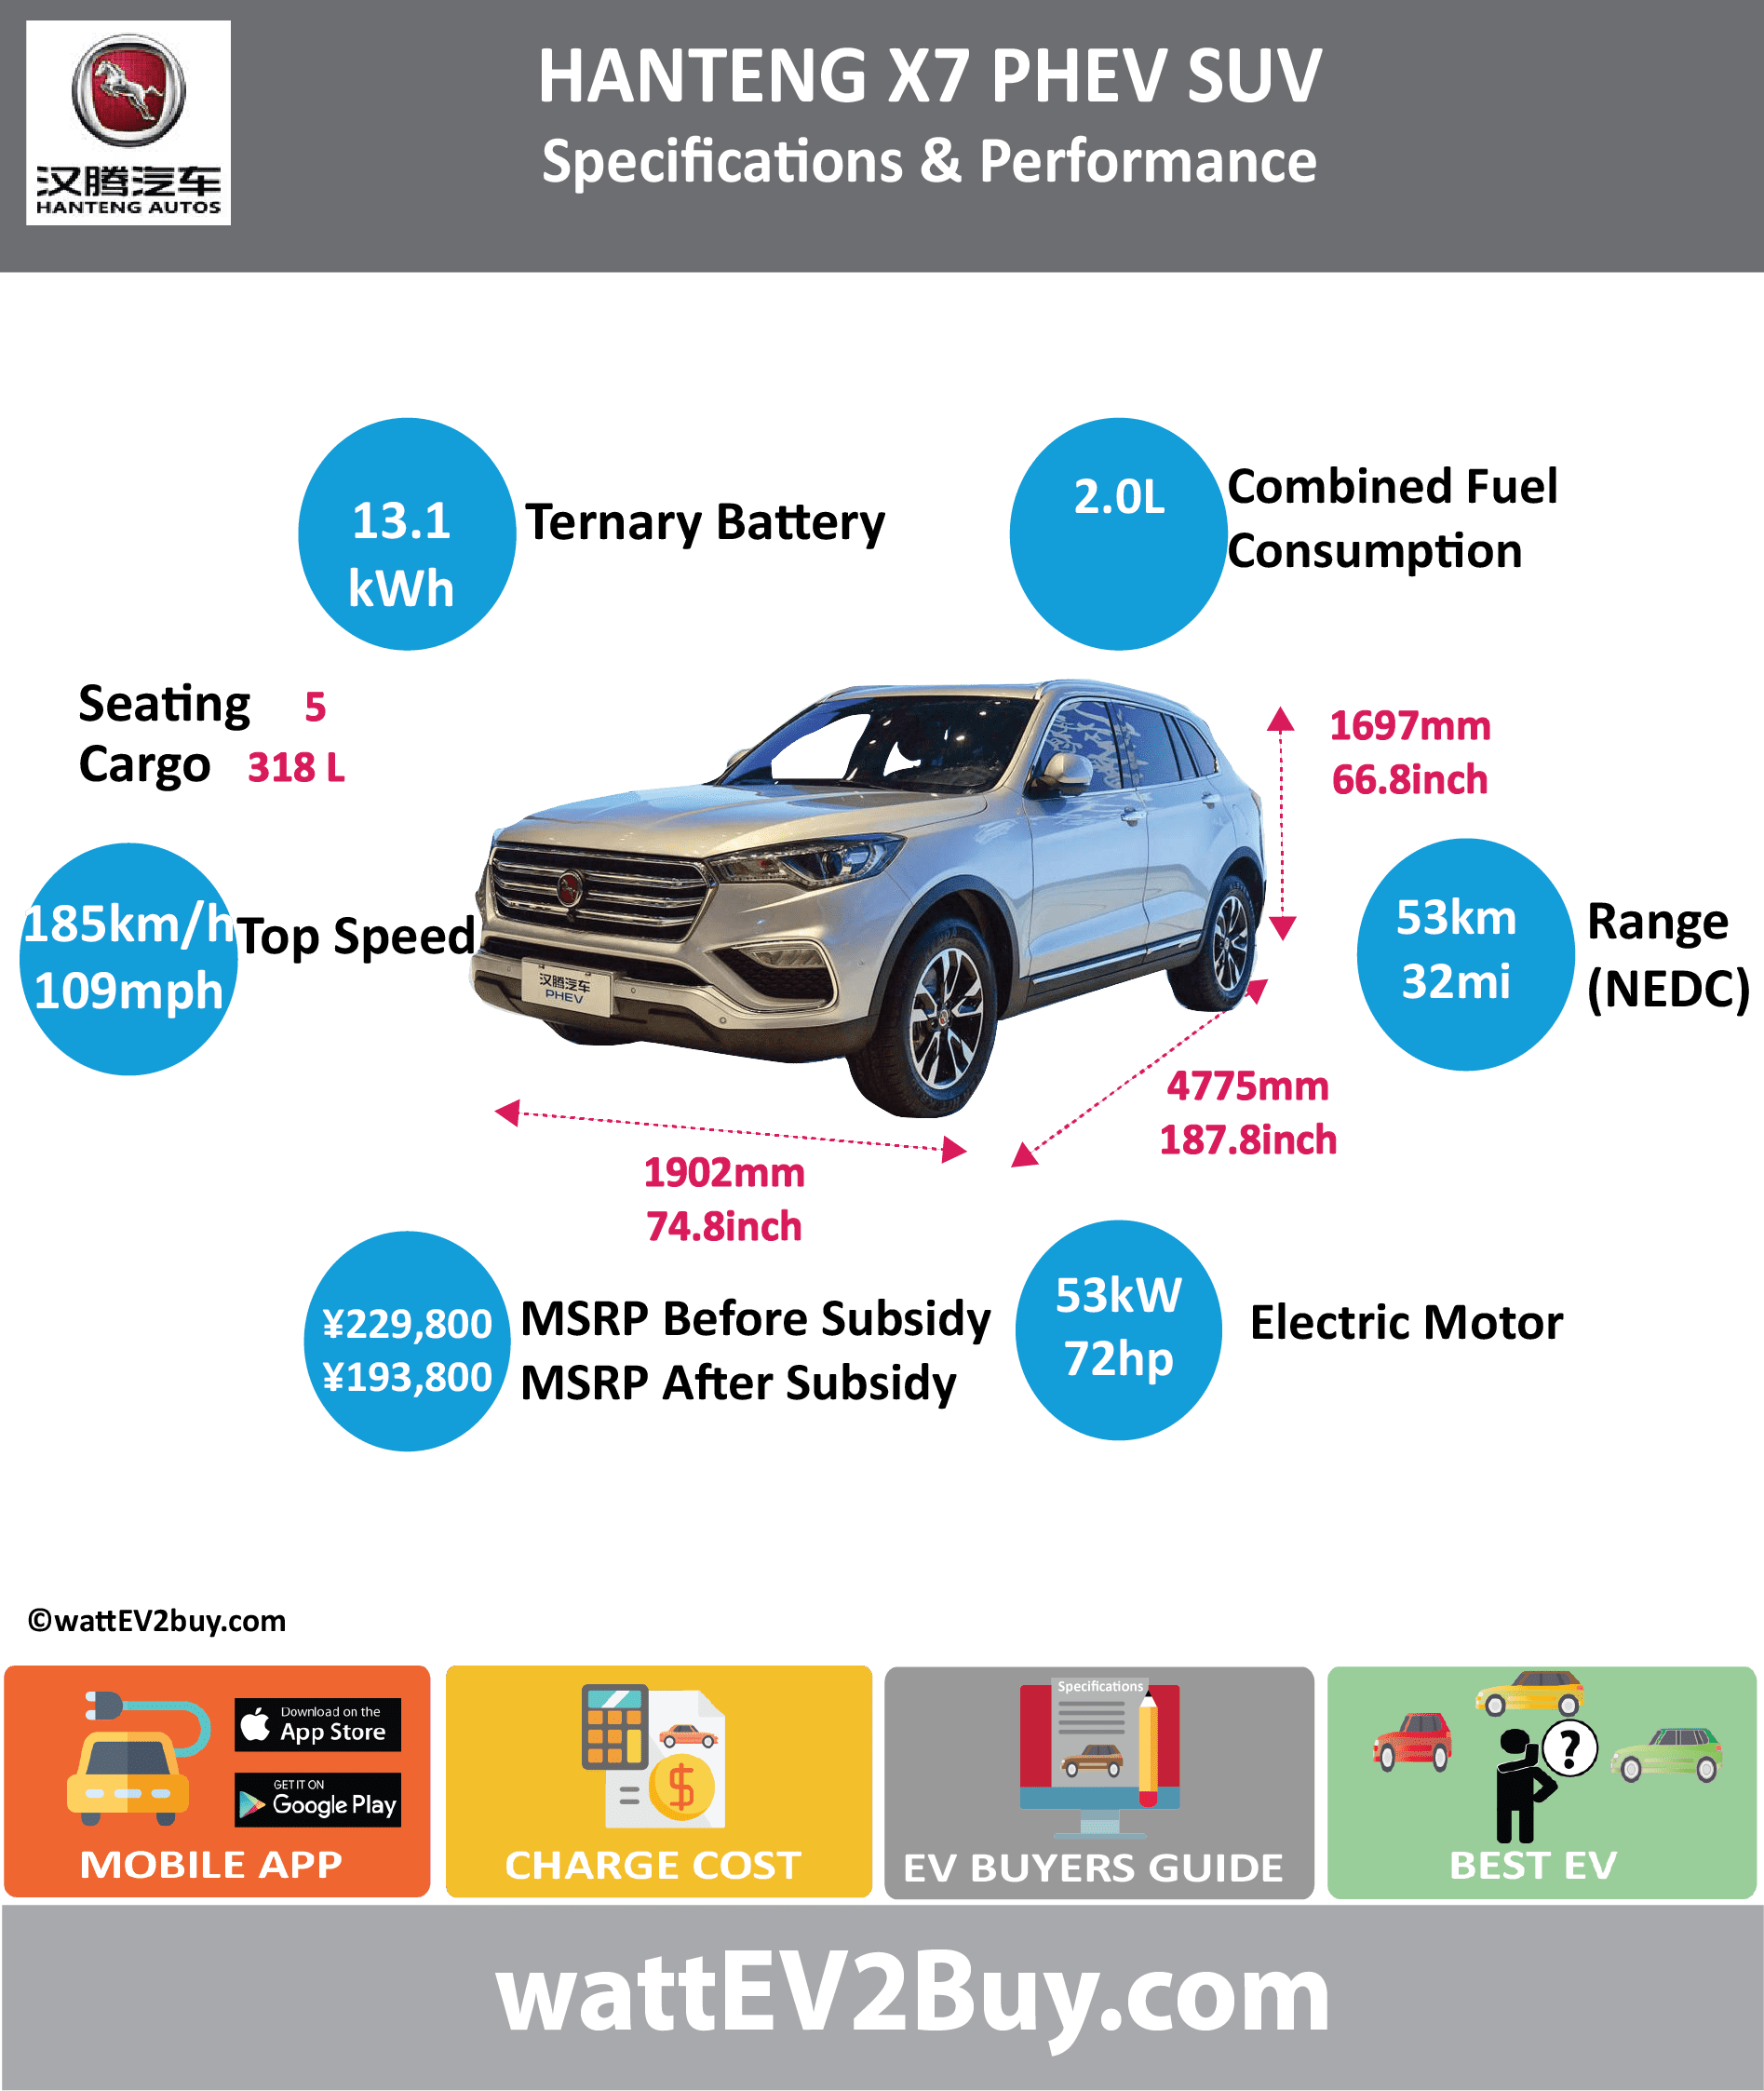 HAN TENG X7 PHEV SUV SPECS	 wattev2Buy.com	2017 Battery Chemistry	 Battery Capacity kWh	13.13 Battery Nominal rating kWh	 Voltage V	 Amps Ah	 Modules	 Cells	 Cell Type	 Energy Density Wh/kg	 Weight (kg)	 Cycles	 SOC	 Battery Manufacturer	Samsung Cooling	 Battery Warranty - years	5 Battery Warranty - km	100000 Battery Electric Range - NEDC Mi	32.5 Battery Electric Range - NEDC km	52 Battery Electric Range - EPA Mi	 Battery Electric Range - EPA km	 Electric Top Speed - mph	 Electric Top Speed - km/h	 Acceleration 0 - 60mph sec	 Onboard Charger kW	 LV 1 Charge kW	 LV 1 Charge Time (Hours)	 LV 2 Charge kW	 LV 2 Charge Time (Hours)	 LV 3 CCS/Combo kW	 LV 3 Charge Time (min to 80%)	 Charge Connector	 MPGe Combined - miles	 MPGe Combined - km	 MPGe City - miles	 MPGe City - km	 MPGe Highway - miles	 MPGe Highway - km	 Electric Motor - Front	1 Max Power - hp	20.1153 Max Power - kW	15 Max Torque - lb.ft	 Max Torque - N.m	55 Electric Motor - Rear	1 Max Power - hp	71.07406 Max Power - kW	53 Max Torque - lb.ft	 Max Torque - N.m	180 Electric Motor Output kW	 Electric Motor Output hp	 Transmission	 Drivetrain	 Energy Consumption kWh/100miles	 Utility Factor	 MPGe Electric Only - miles	 CHINA MSRP (before incentives & destination)	 ¥229,800.00  MSRP after incentives	 ¥193,800.00  Combustion	1.8T Turbo Extended Range - mile	 Extended Range - km	 ICE Max Power - hp	 ICE Max Power - kW	 ICE Max Torque - lb.ft	 ICE Max Torque - N.m	 ICE Top speed - mph	108.8 ICE Top speed - km/h	185 ICE Acceleration 0 - 50km/h sec	 ICE Acceleration 0 - 62mph sec	7.9 ICE MPGe Combined - miles	 ICE MPGe Combined - km	 ICE MPGe City - miles	 ICE MPGe City - km	 ICE MPGe Highway - miles	 ICE MPGe Highway - km	 ICE Transmission	 ICE Fuel Consumption l/100km	 ICE Emission Rating	 ICE Emissions CO2/mi grams	 ICE Emissions CO2/km grams	 Total System	 Max Power - hp	168 Max Power - kW	125 Max Torque - lb.ft	 Max Torque - N.m	245 Fuel Consumption l/100km	2.0 MPGe Combined - miles	 Vehicle	 Seating	5 Doors	5 Dimensions	 Fuel tank (L)	37 Luggage (L)	318 Luggage Seats Down (L)	736 GVWR (kg)	2380 Curb Weight (lbs)	 Ground Clearance (mm)	 Lenght (mm)	4775 Width (mm)	1902 Height (mm)	1697 Wheelbase (mm)	2810 Lenght (inc)	187.8 Width (inc)	74.8 Height (inc)	66.8 Wheelbase (inc)	110.5 Other	 Chassis designed	Mahler First Delivery	 Chinese Name	汉腾X7 PHEV Model Code	 Website